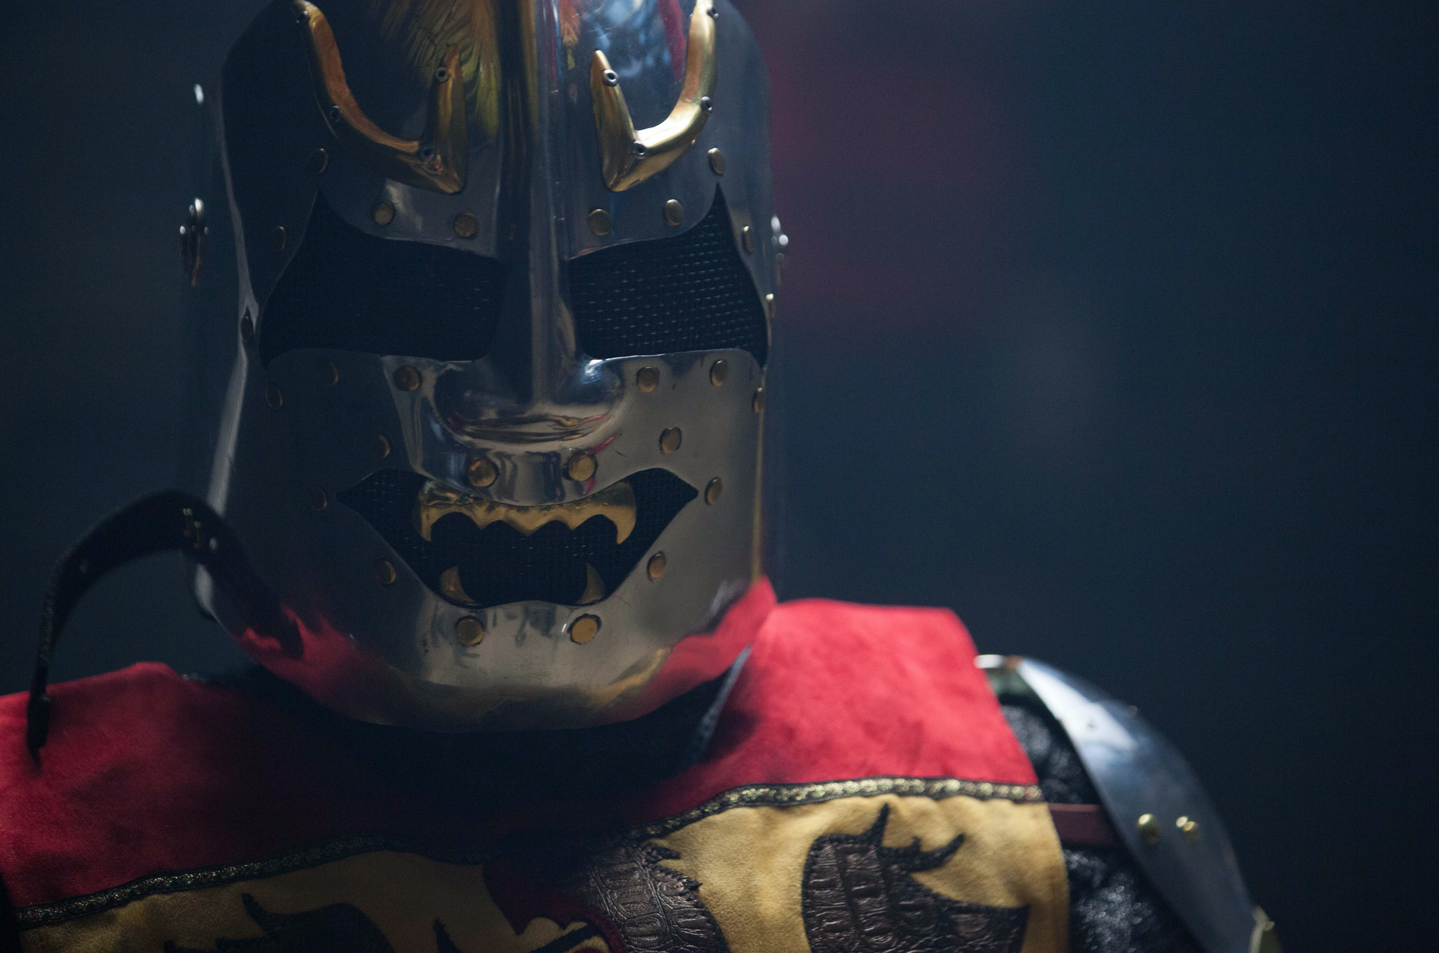 A closeup of a Knight in full armor.